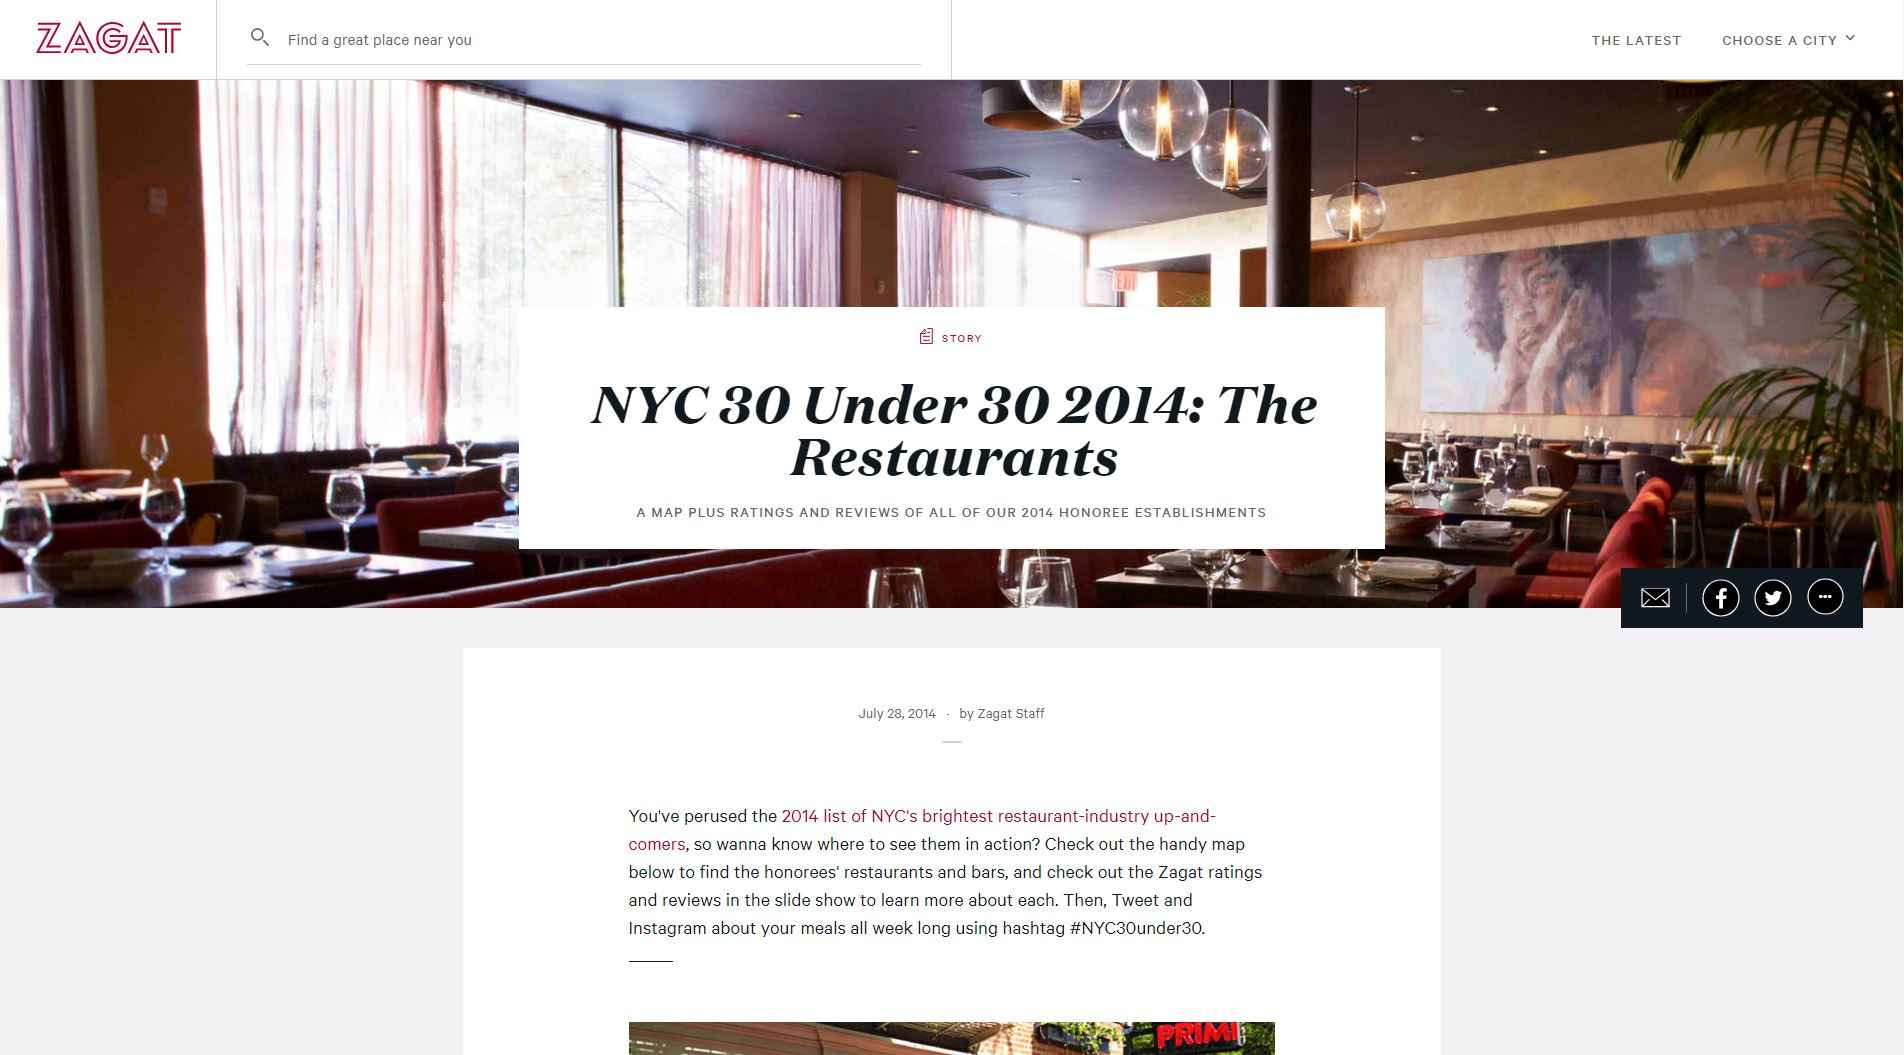 nyc 30 under 30 2014 the restaurants